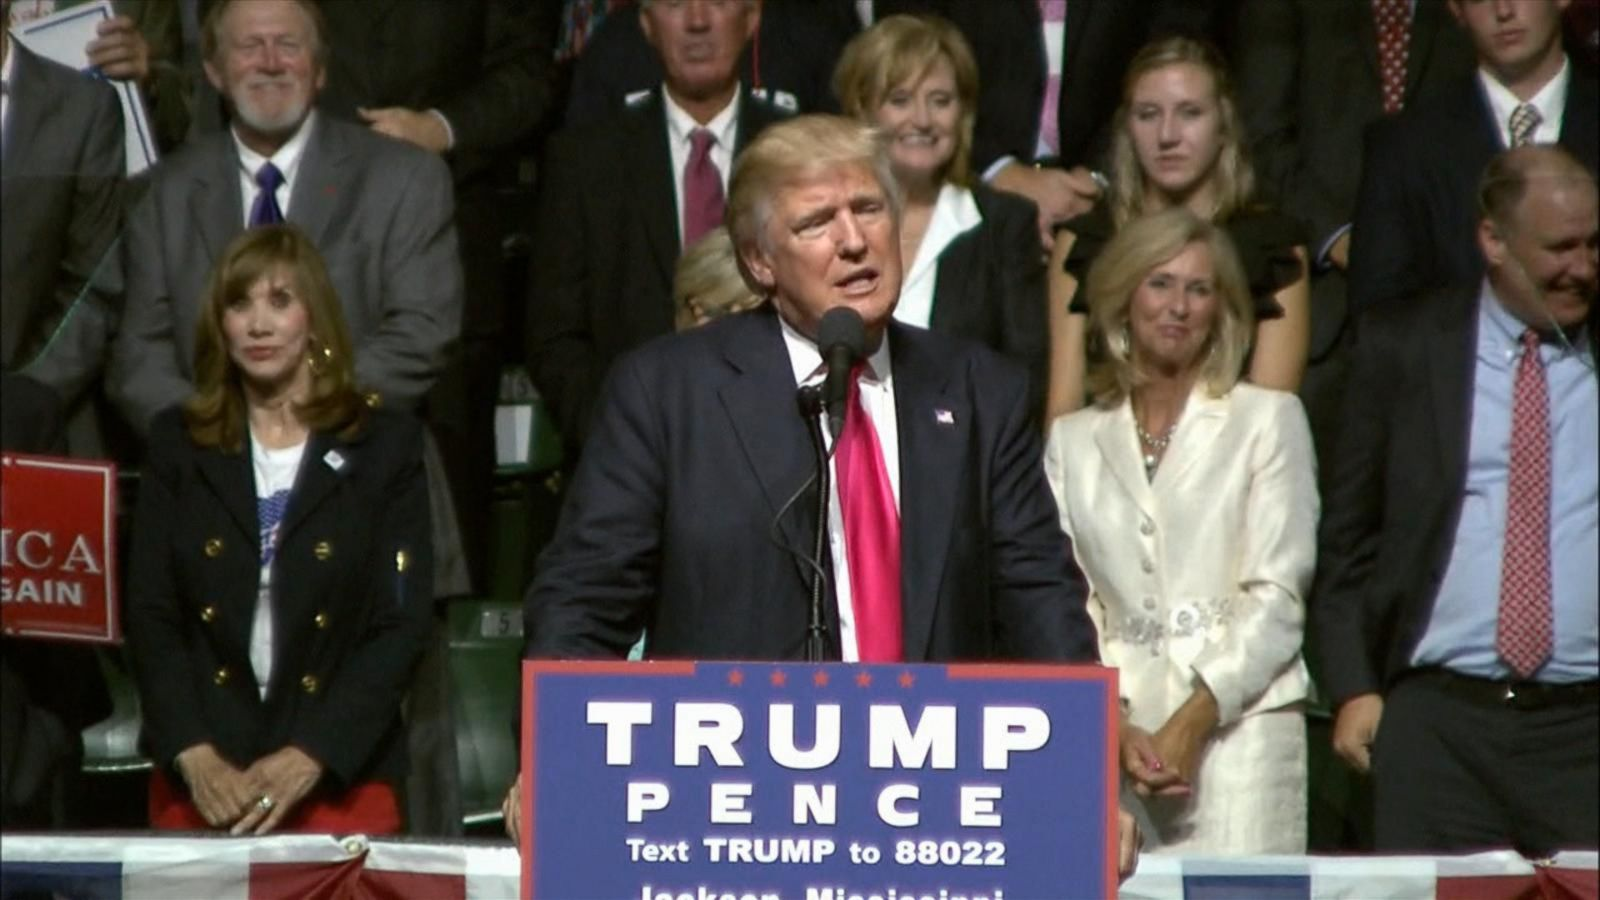 VIDEO: Donald Trump Changes Course on Immigration